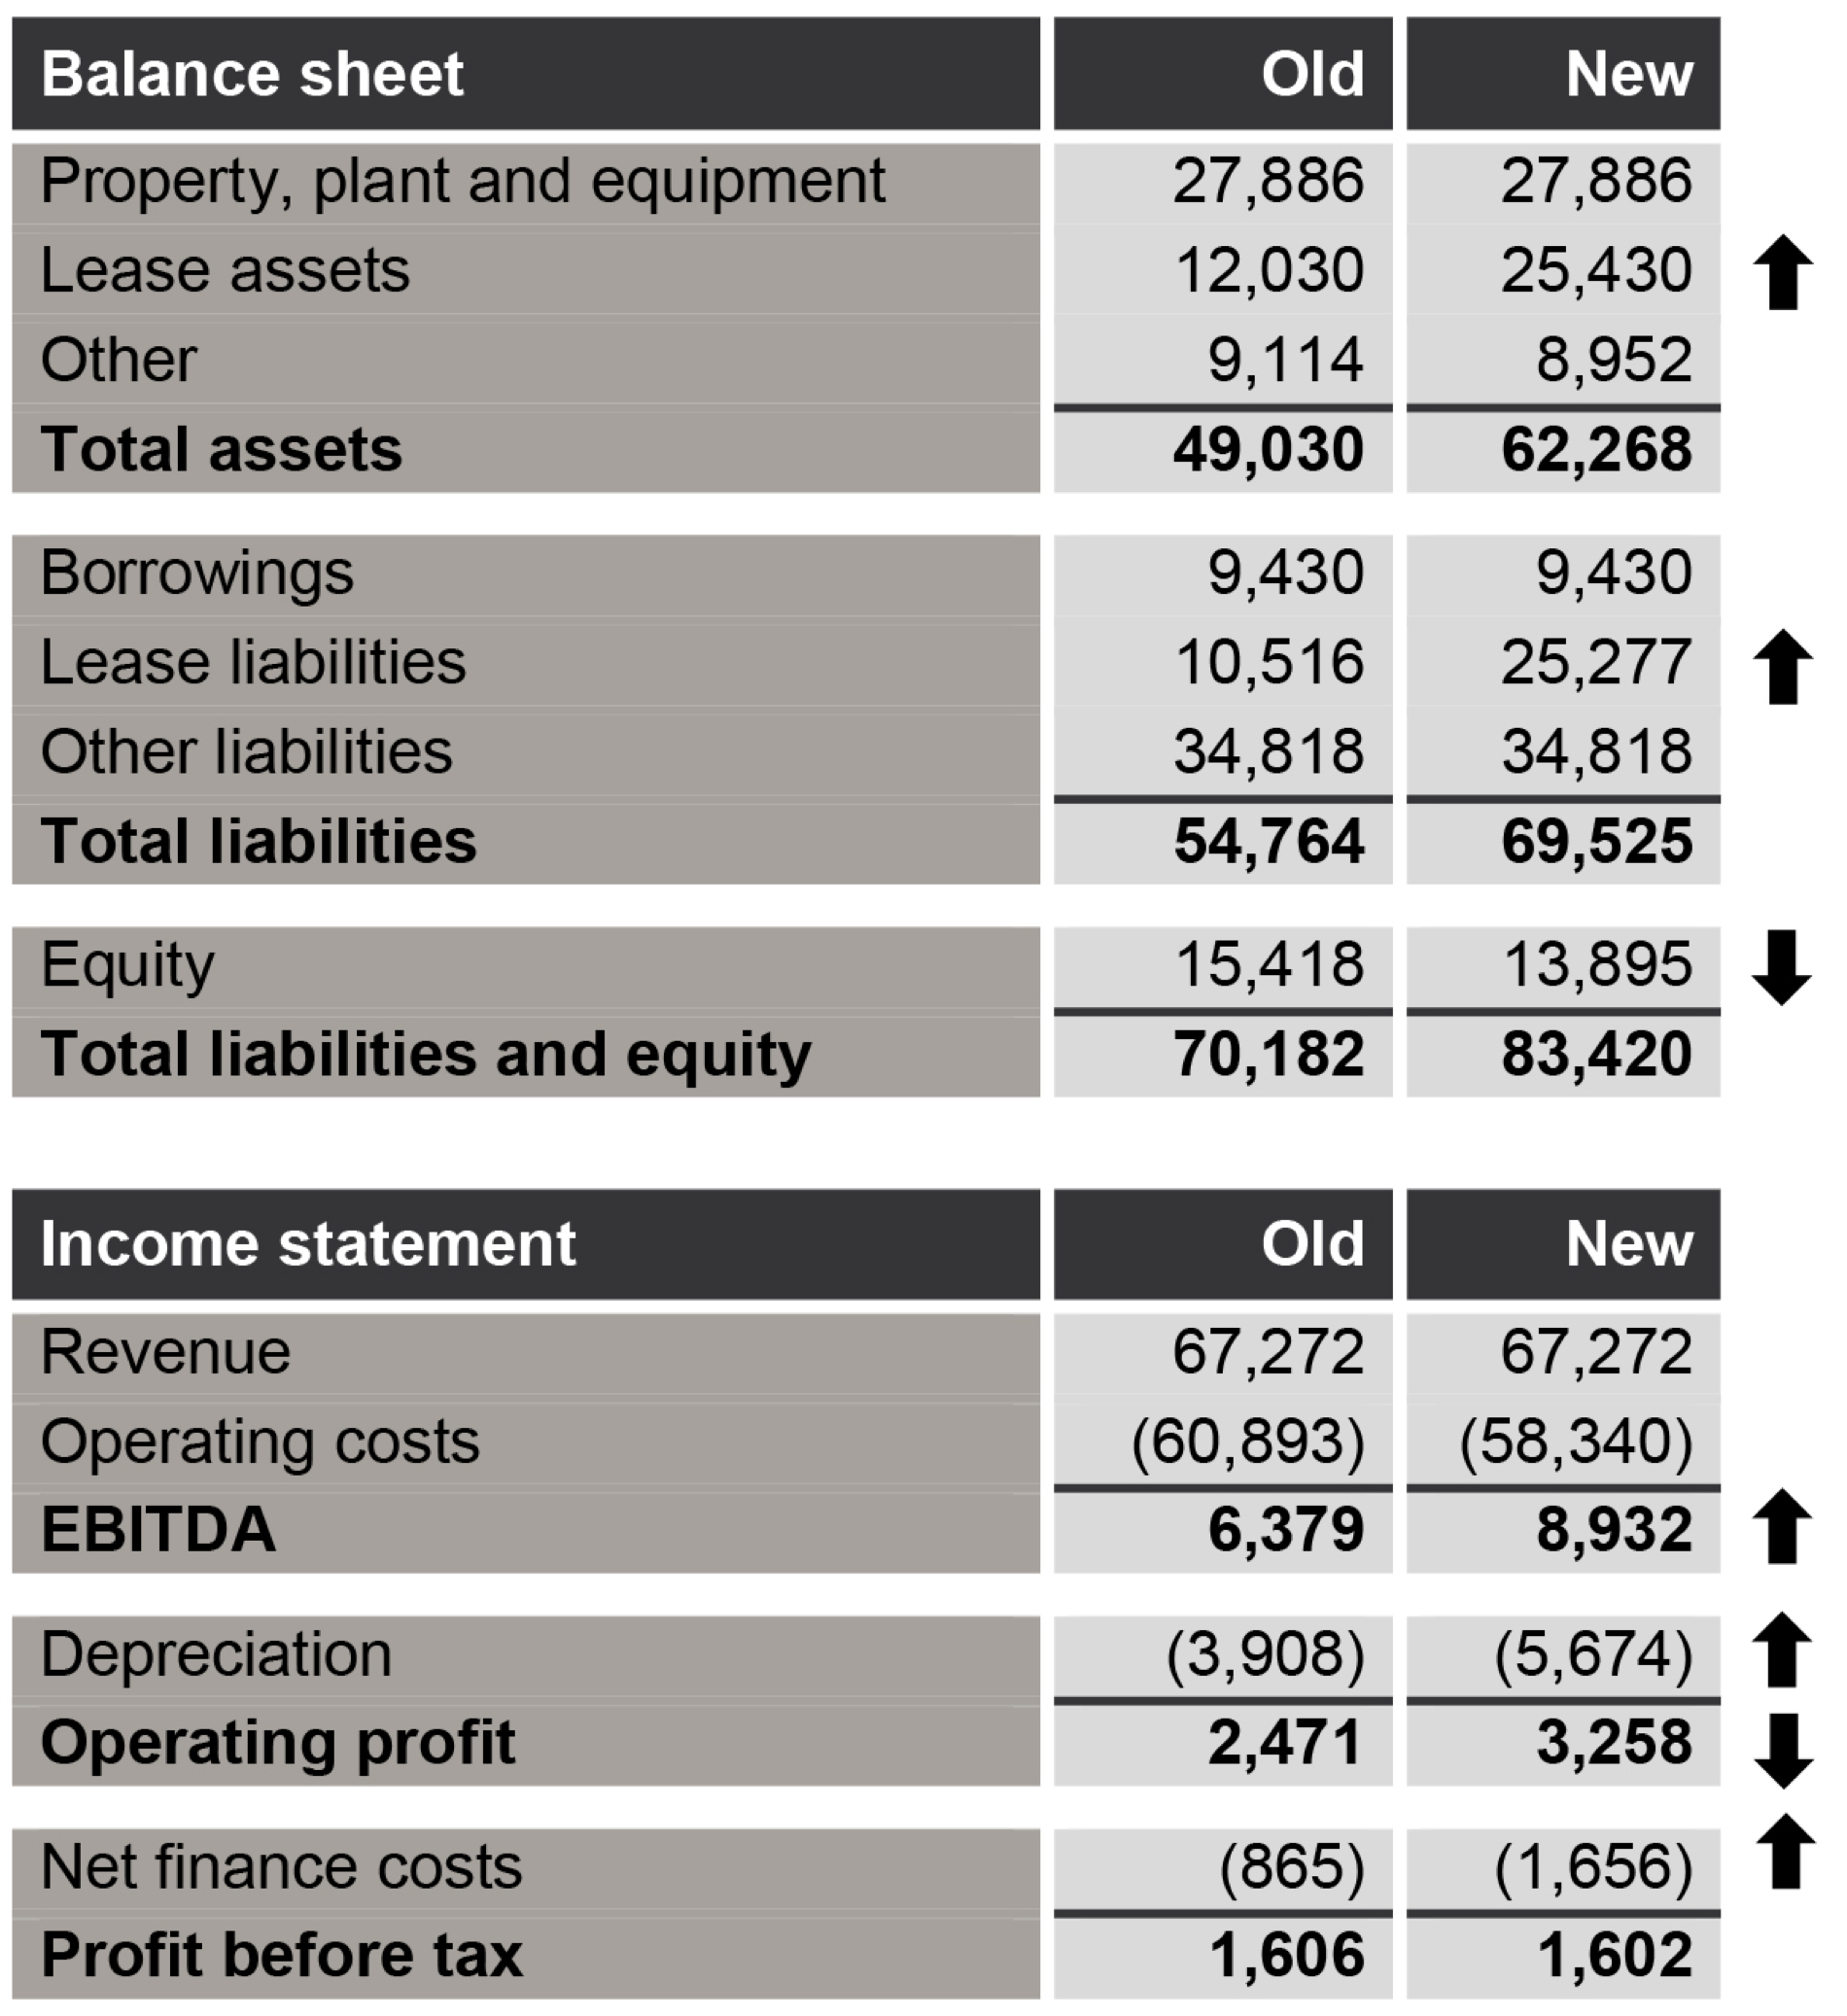 balance sheet and income statement - old and new